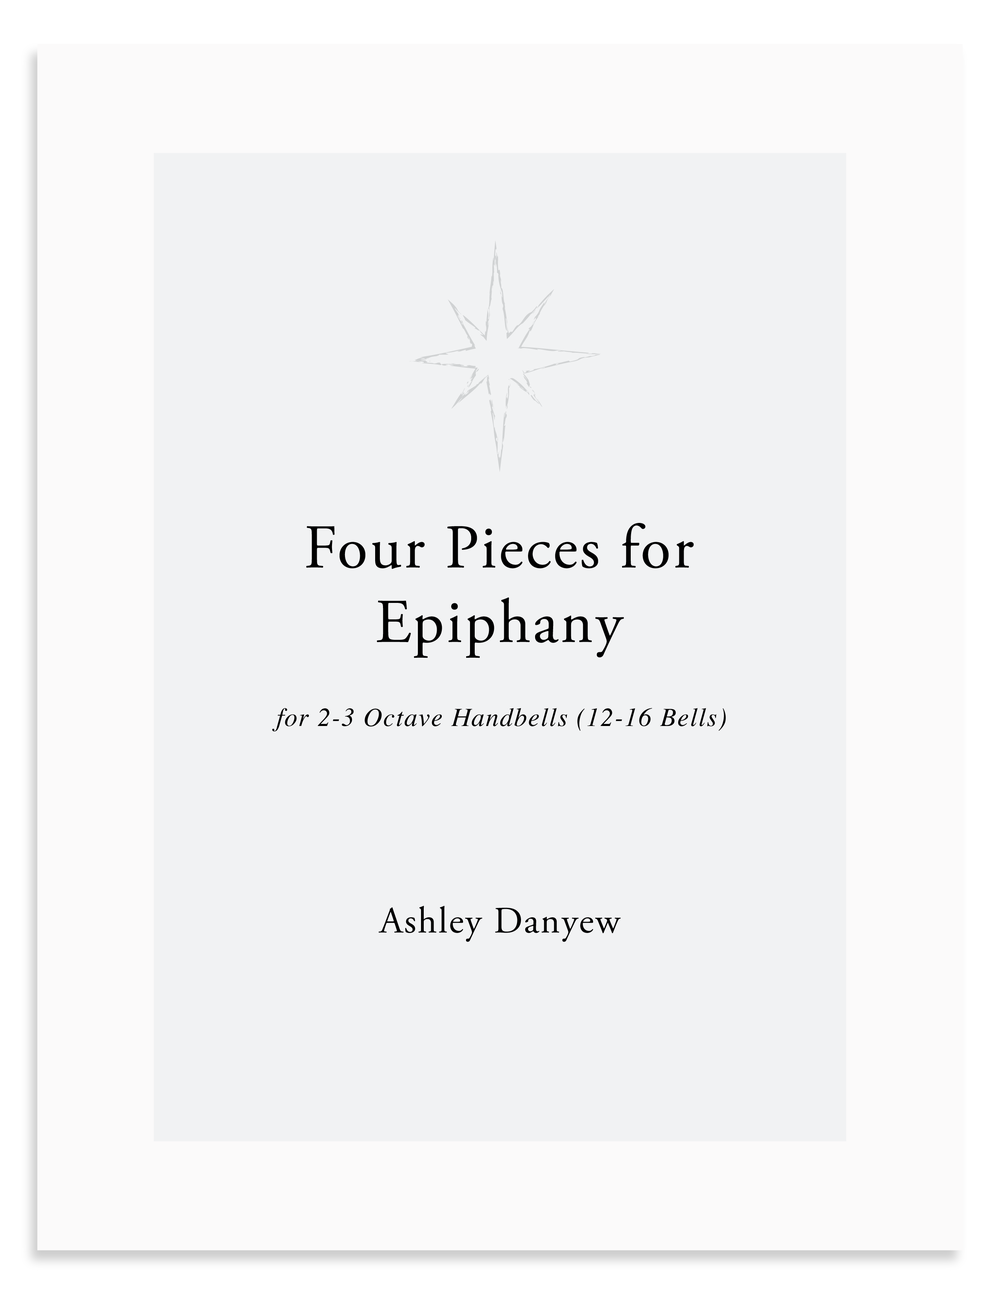 Four Pieces for Epiphany - a digital collection for 2-3 octave handbells (12-15 bells).png